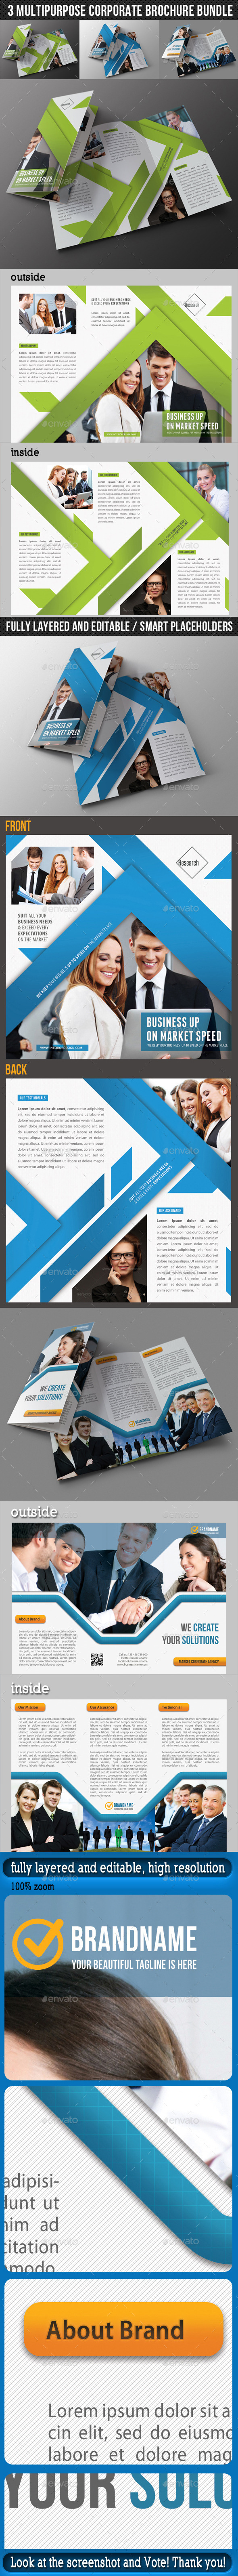 GraphicRiver 3 in 1 Corporate Brochure Bundle 03 9686826